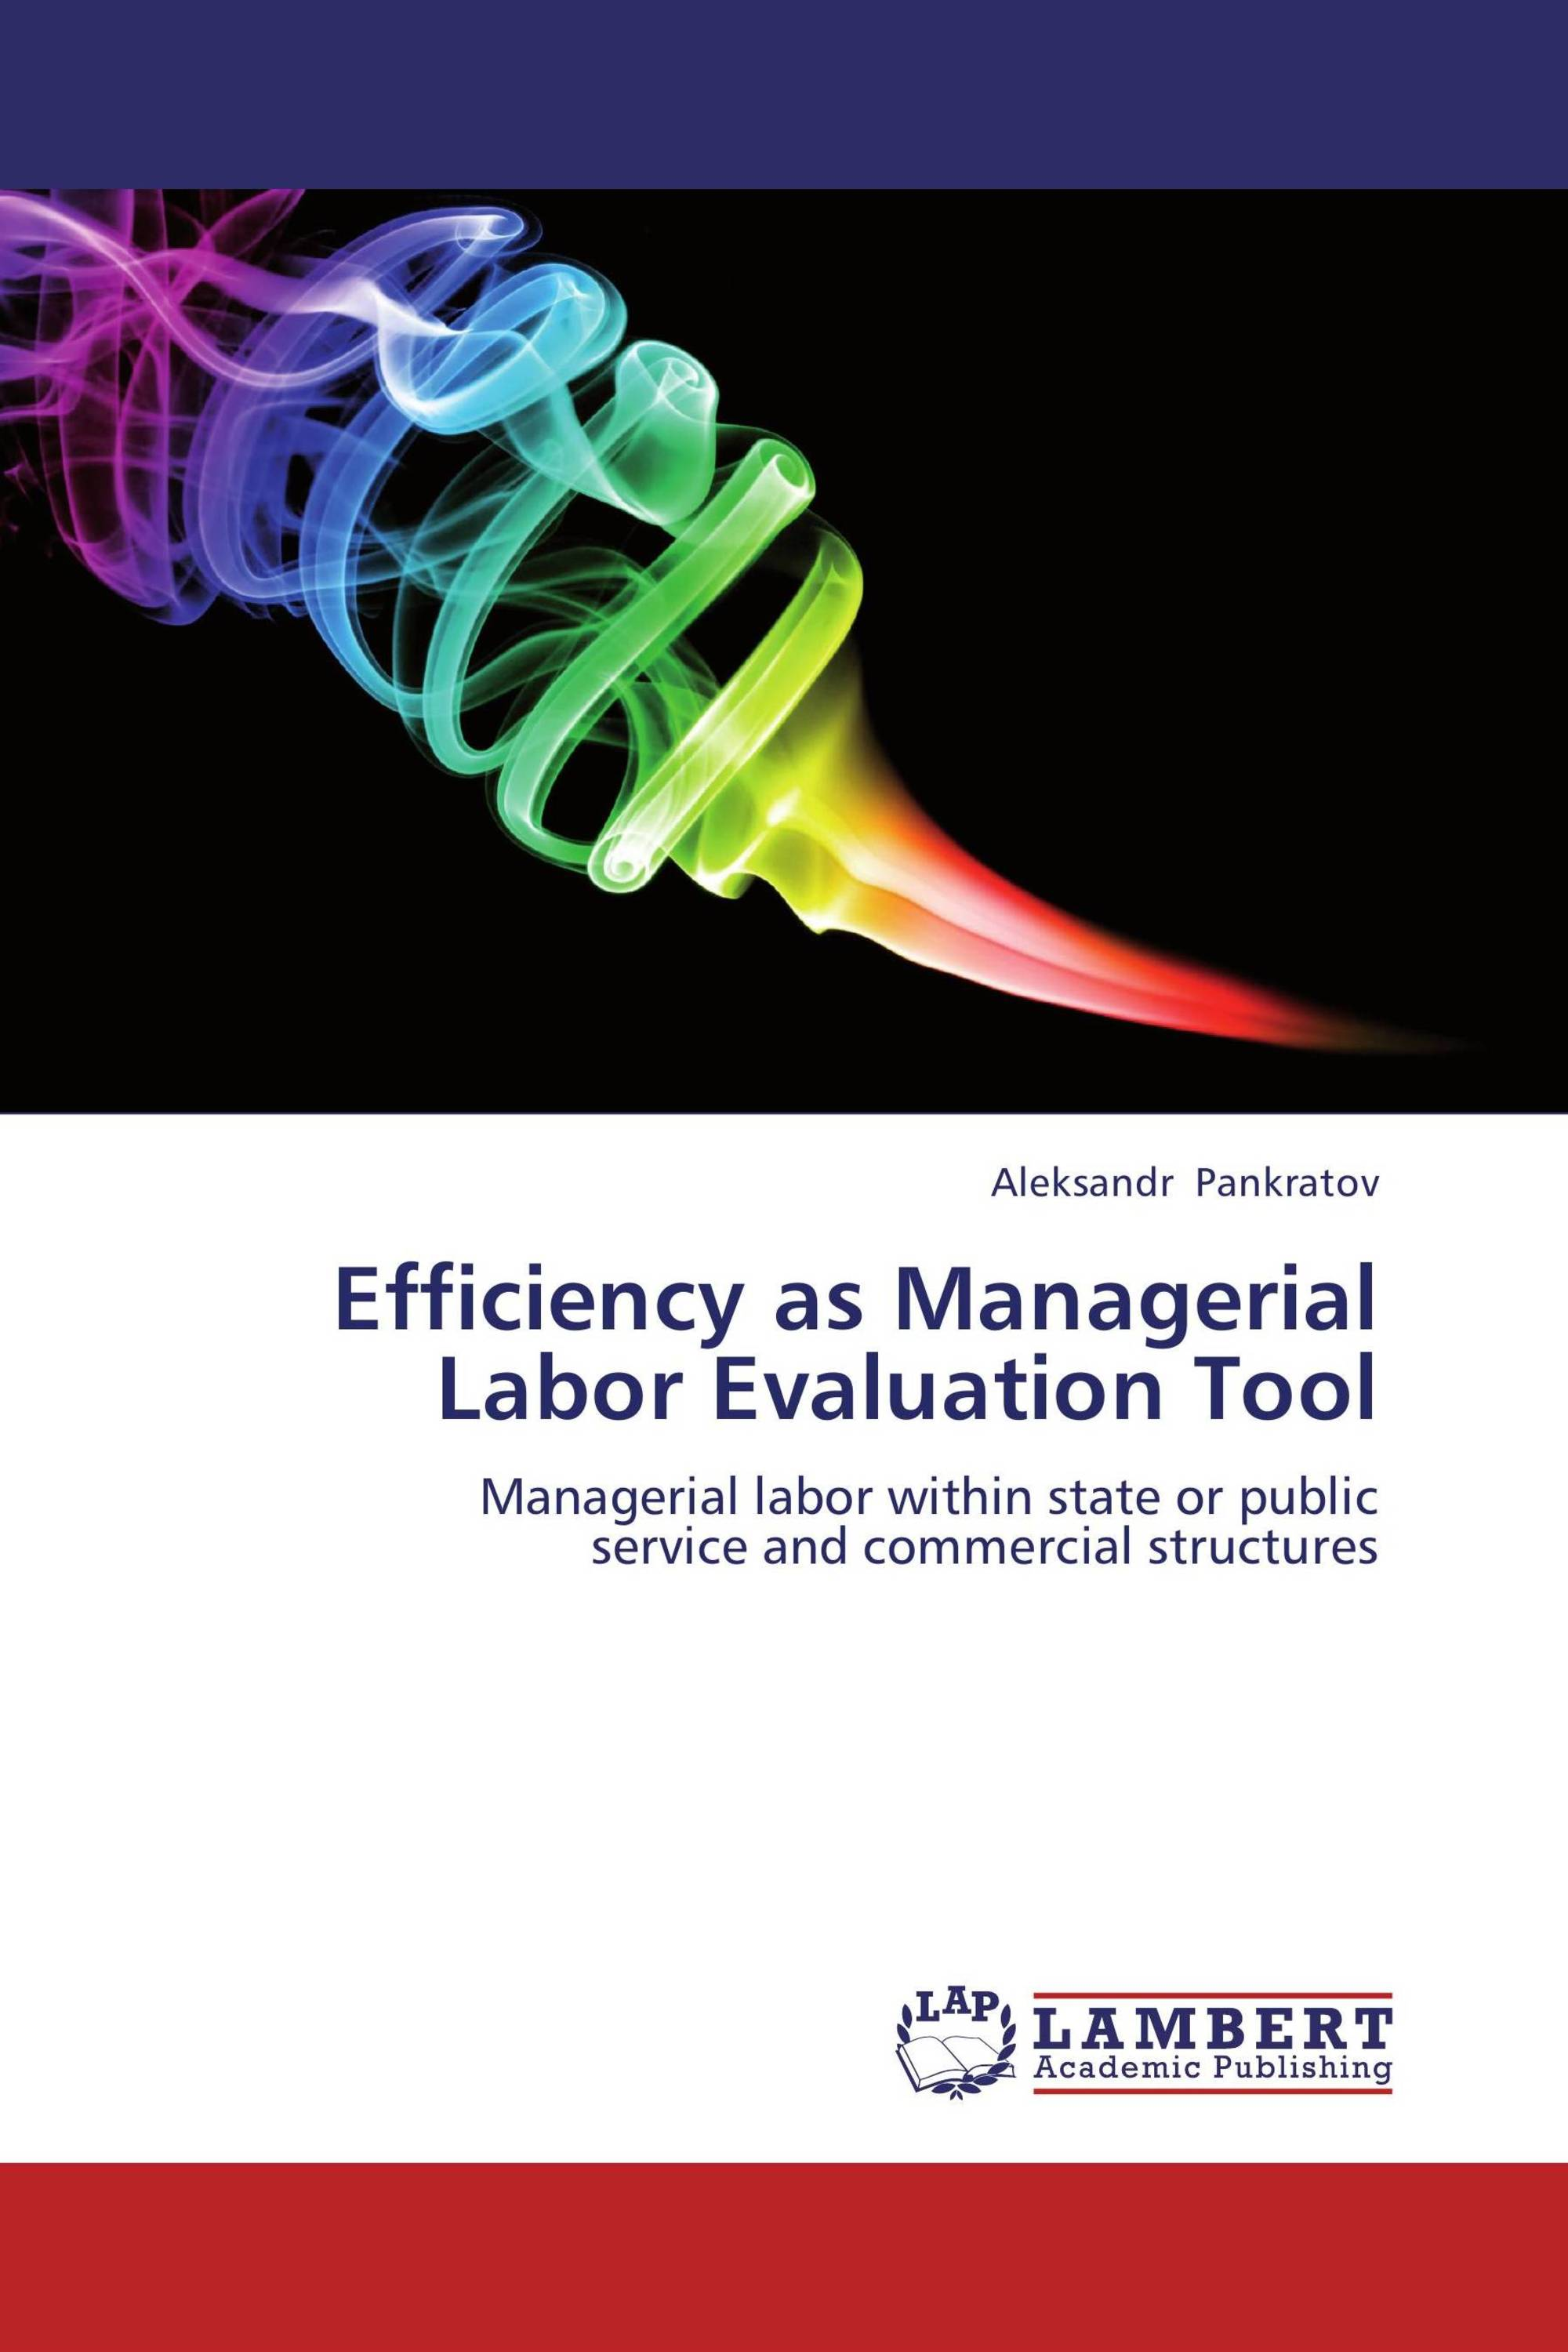 Efficiency as Managerial Labor Evaluation Tool